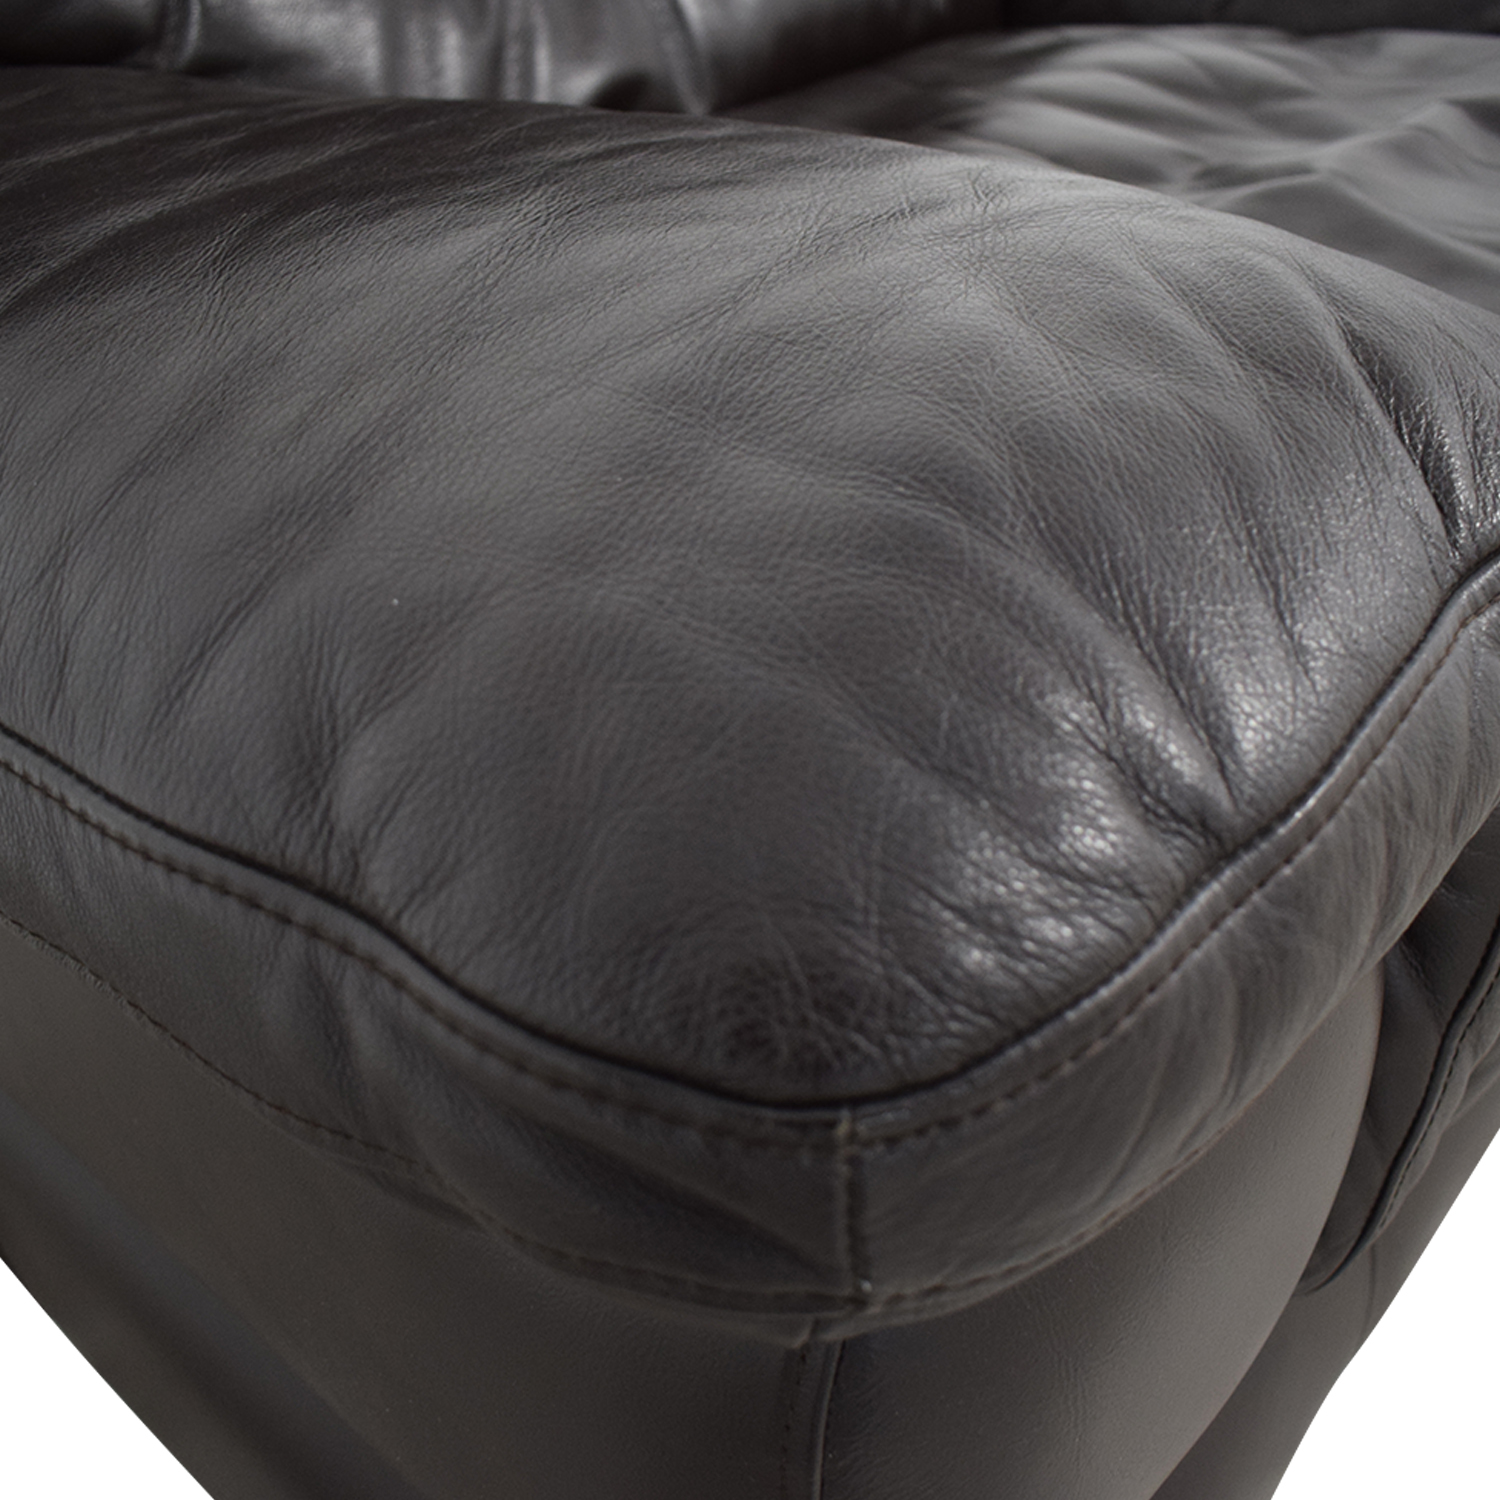 Bob's Discount Furniture Bob's Discount Furniture Brown Leather Accent Chair Chairs